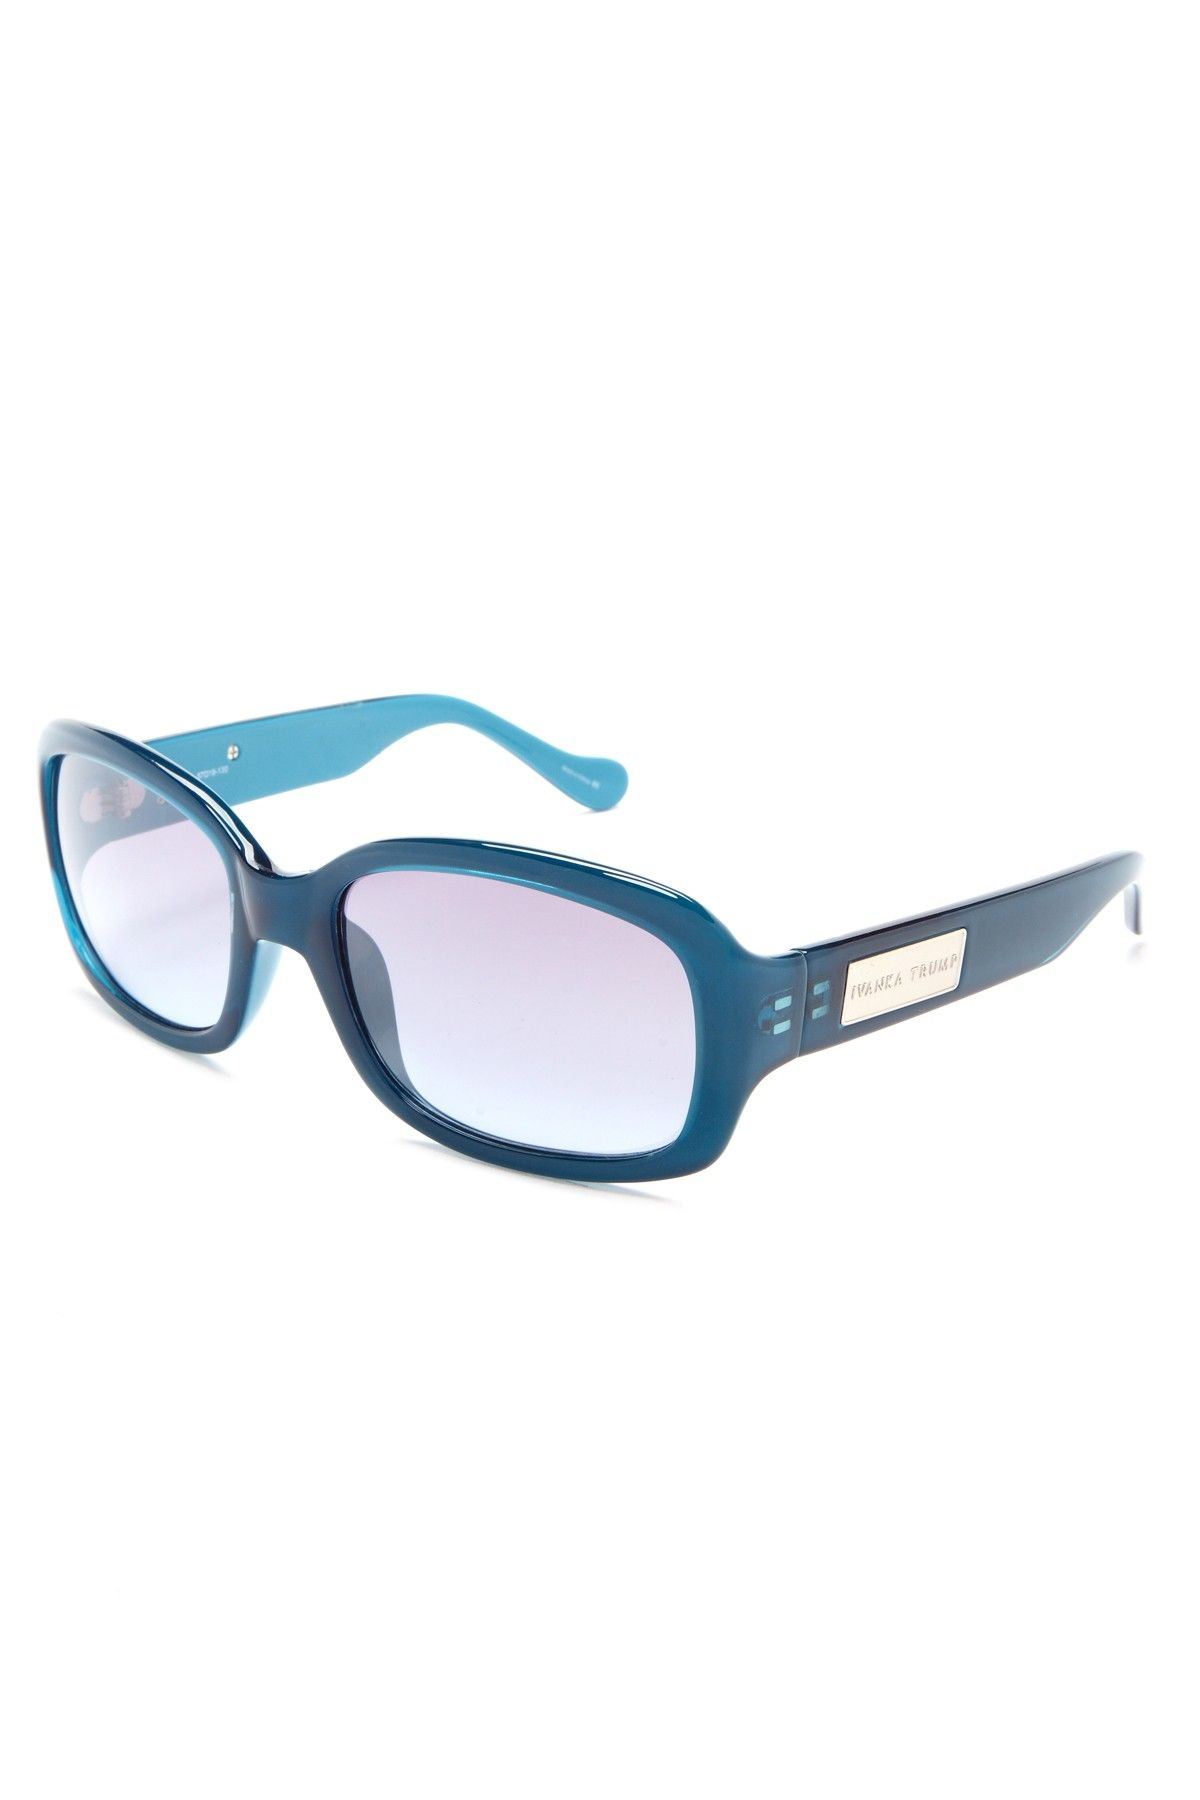 Women's Square Sunglasses by Ivanka Trump on @nordstrom_rack